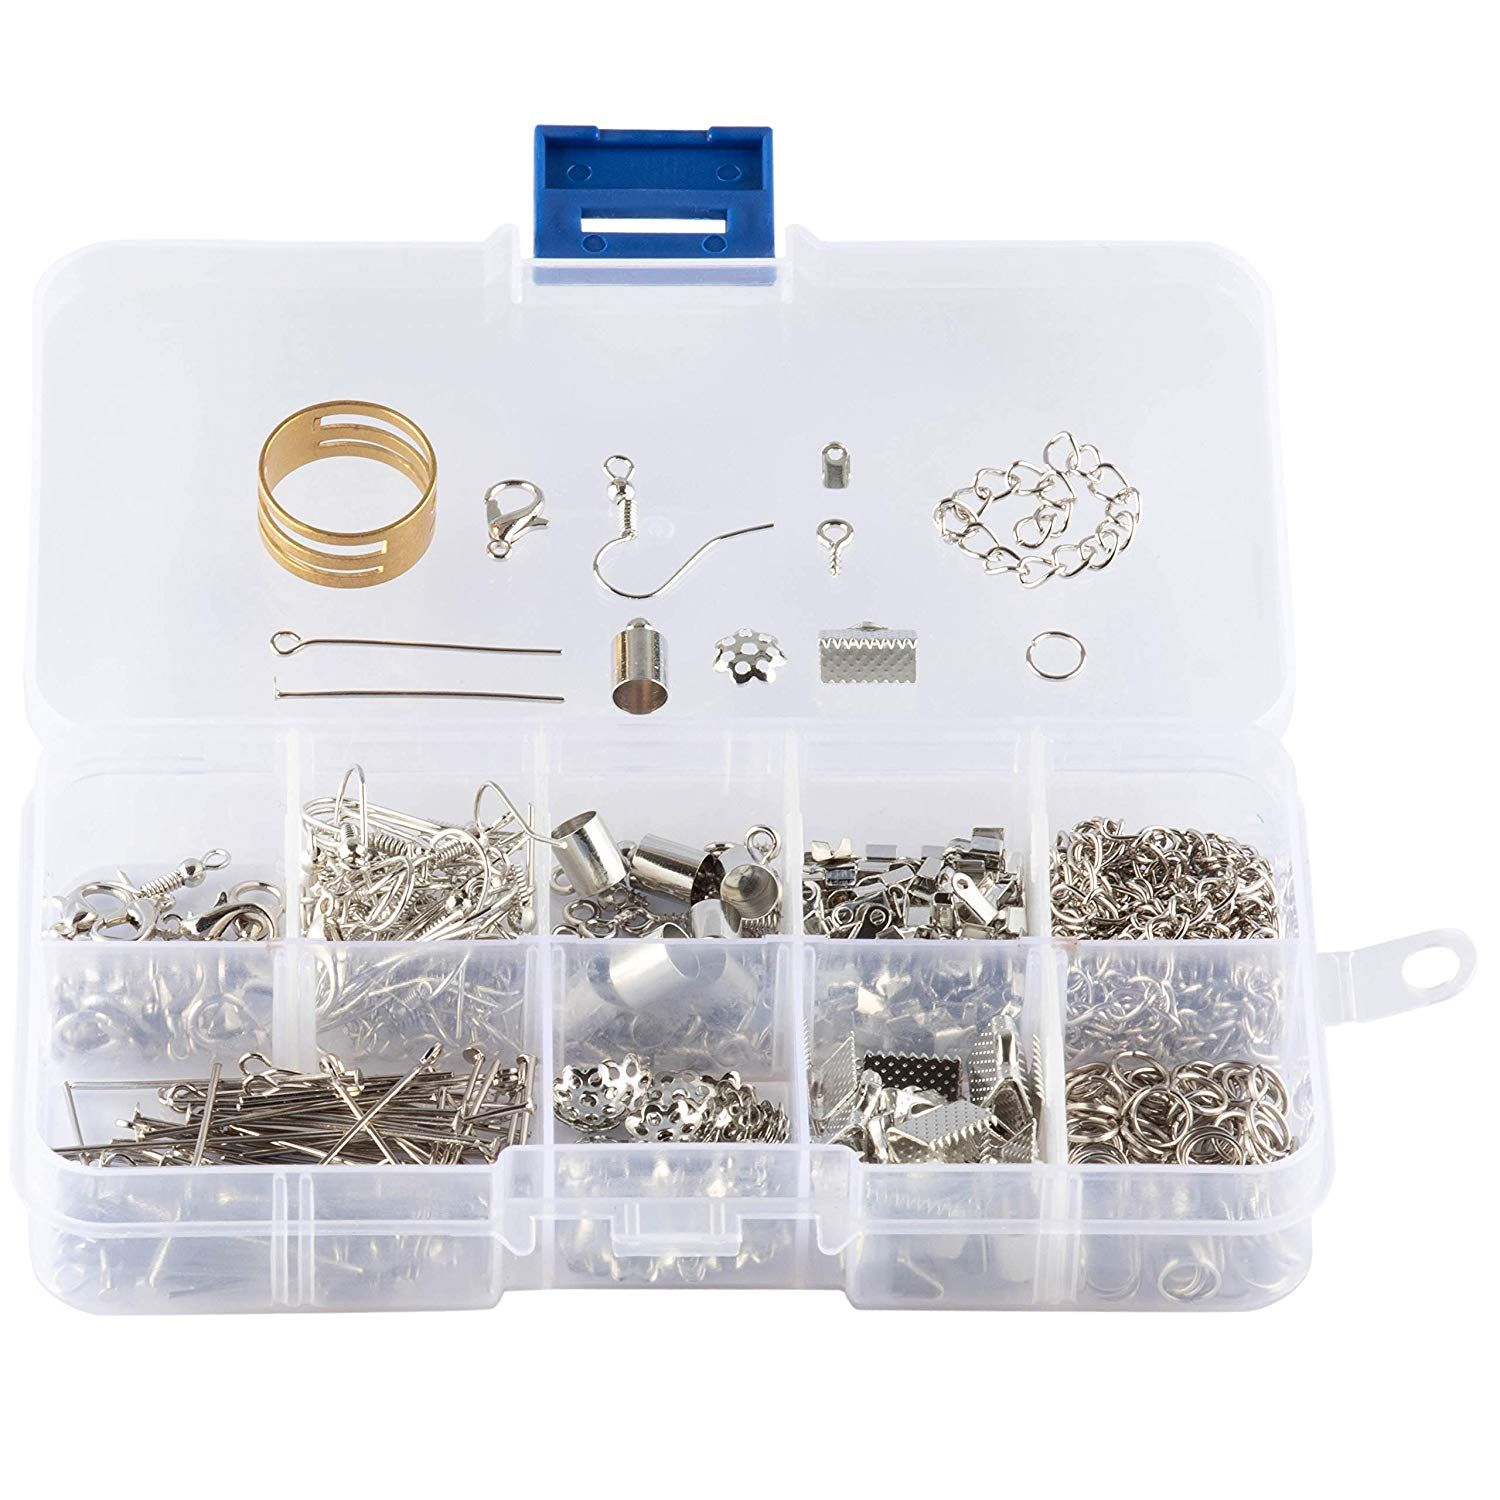 Jewelry Making Starter Kit Darice Beads Silver Bracelet Tools NEW craft findings